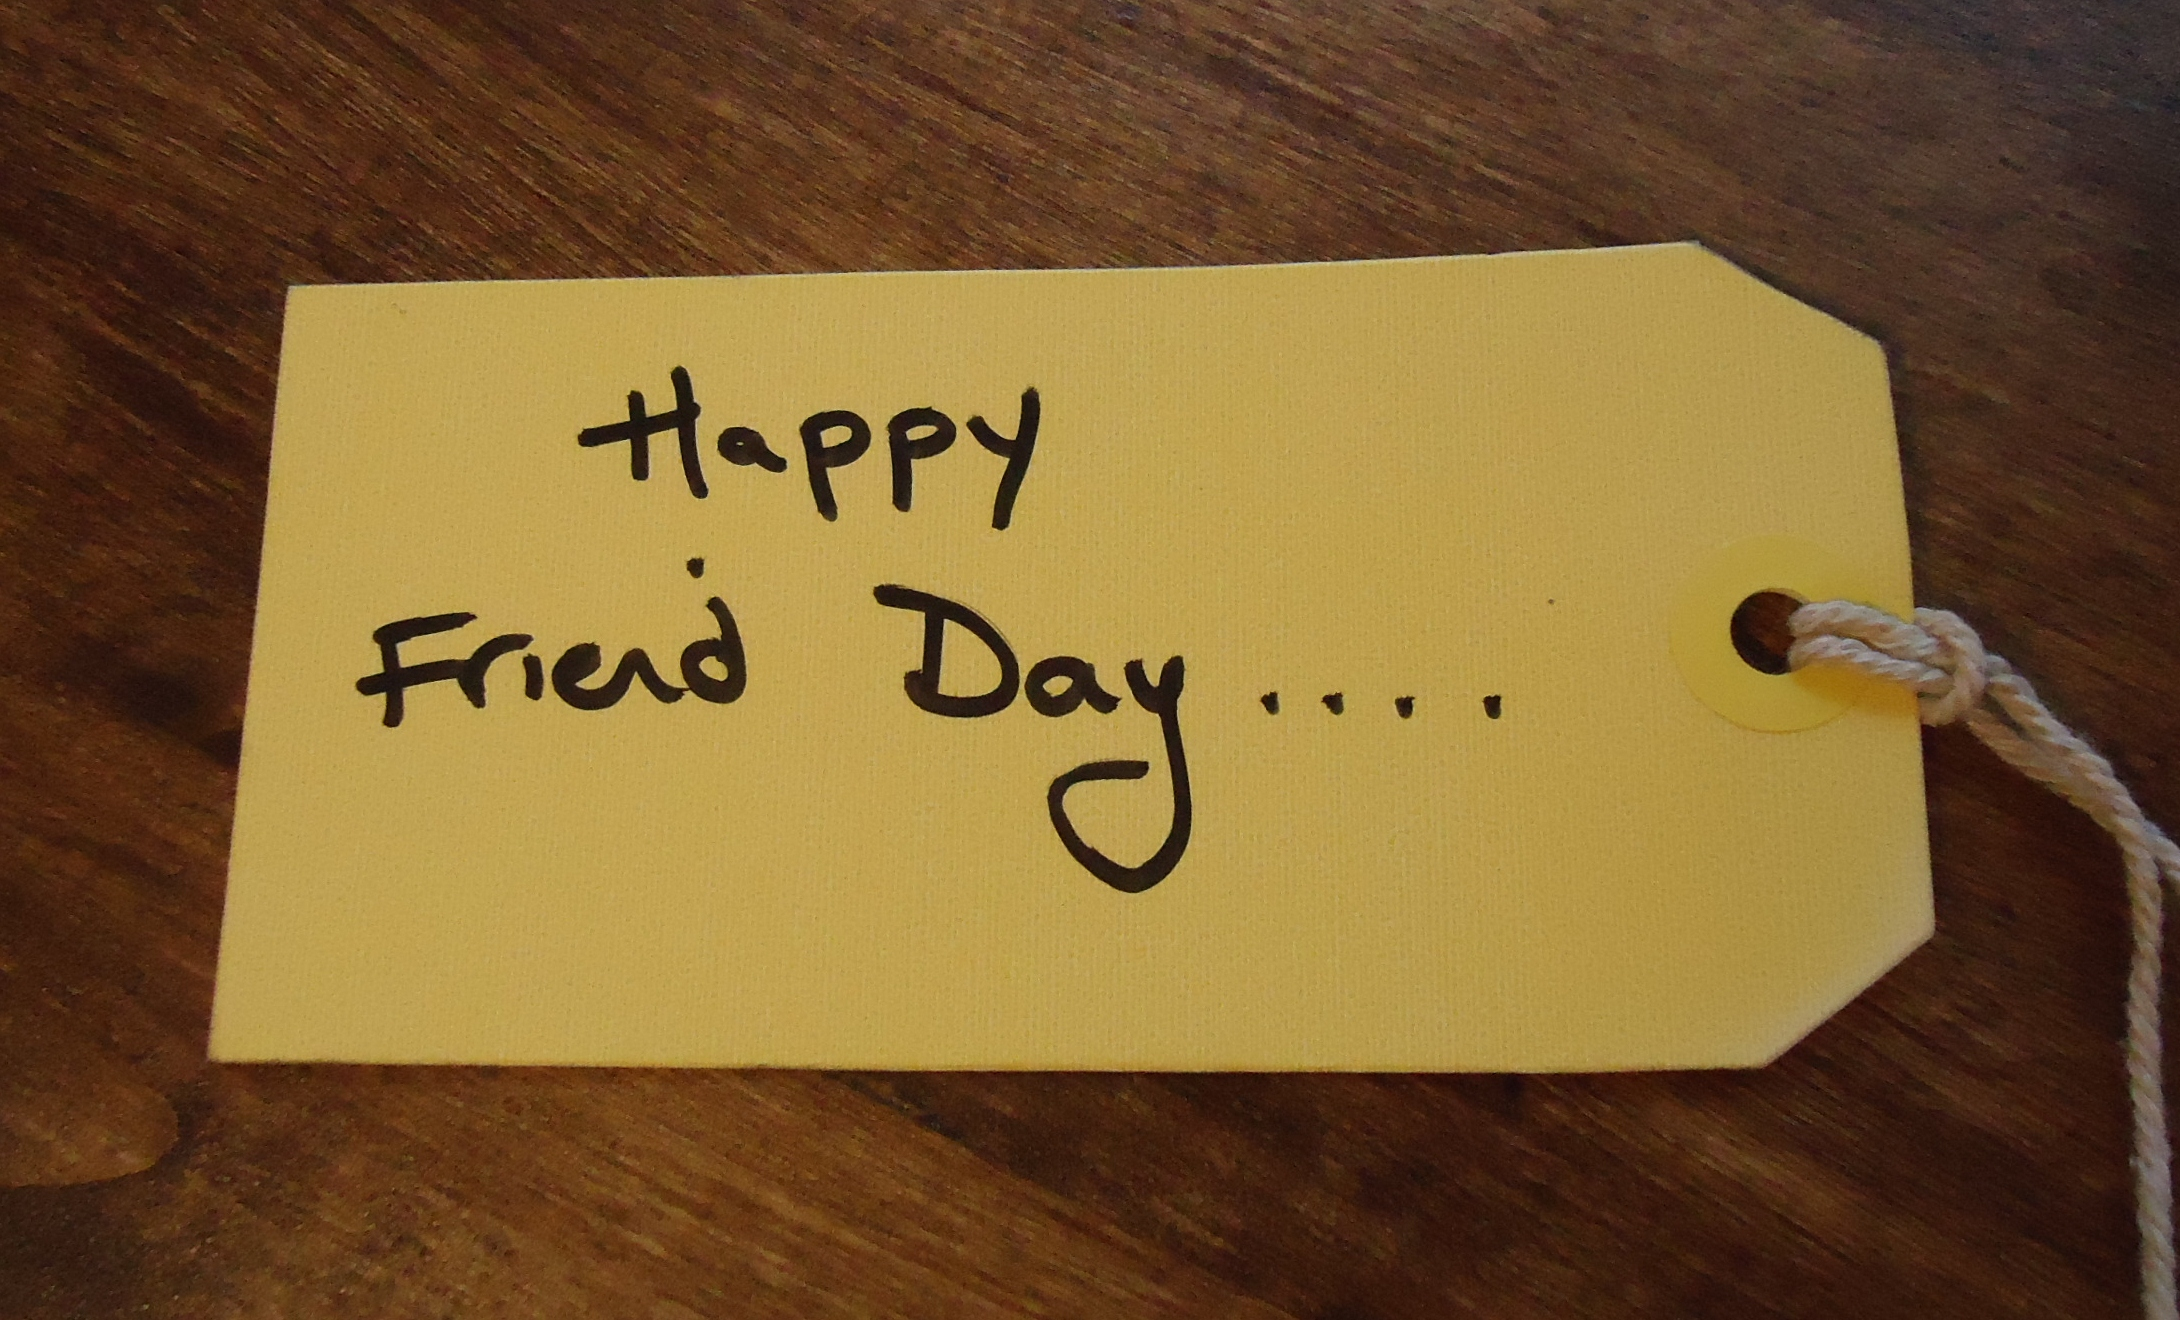 Friendship Day HD Picture, Photos and Wallpapers